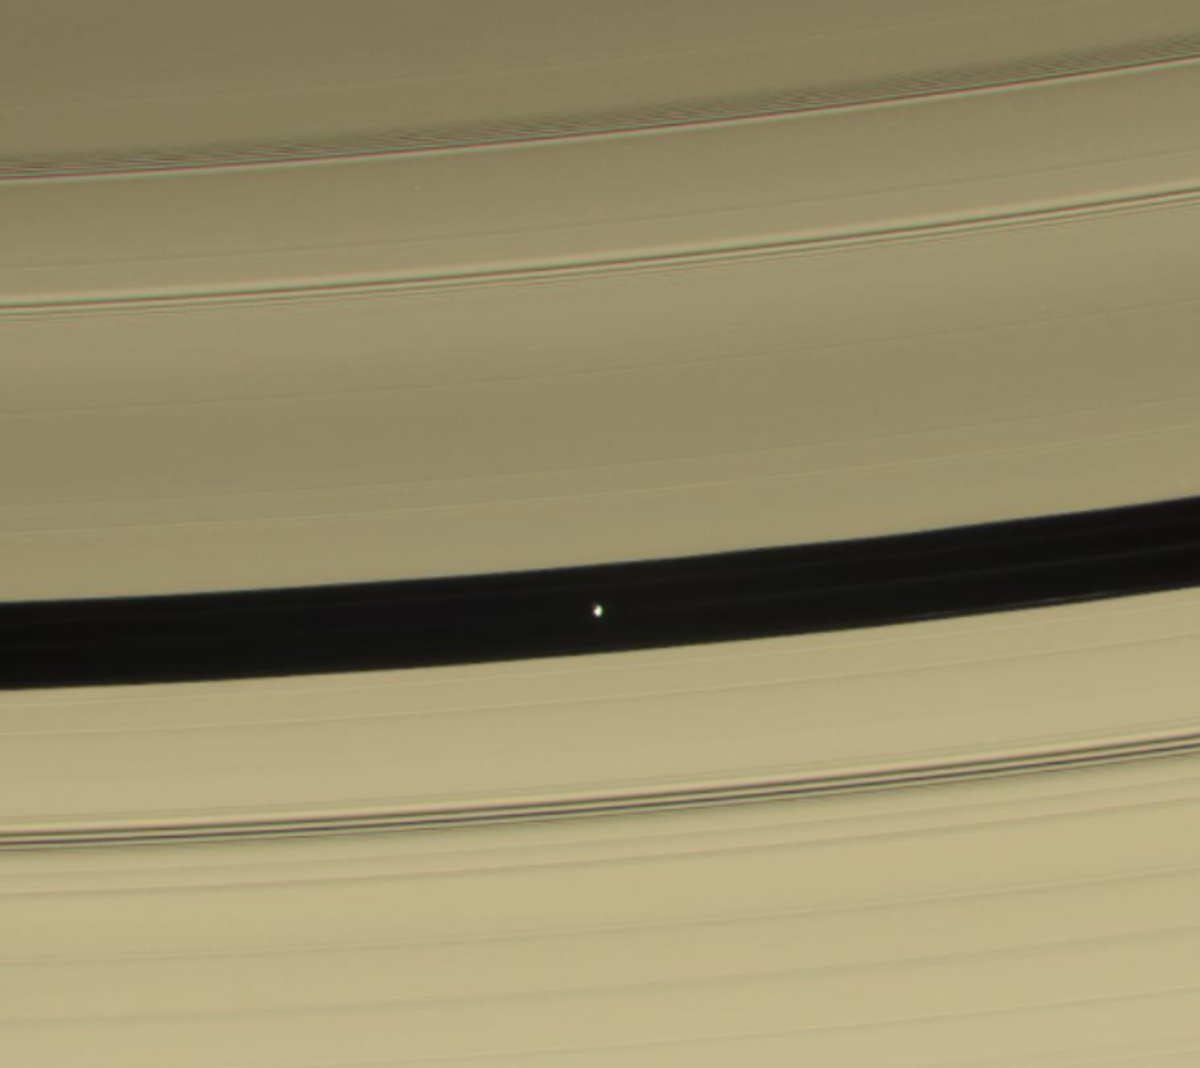 Pan in the Encke Gap.